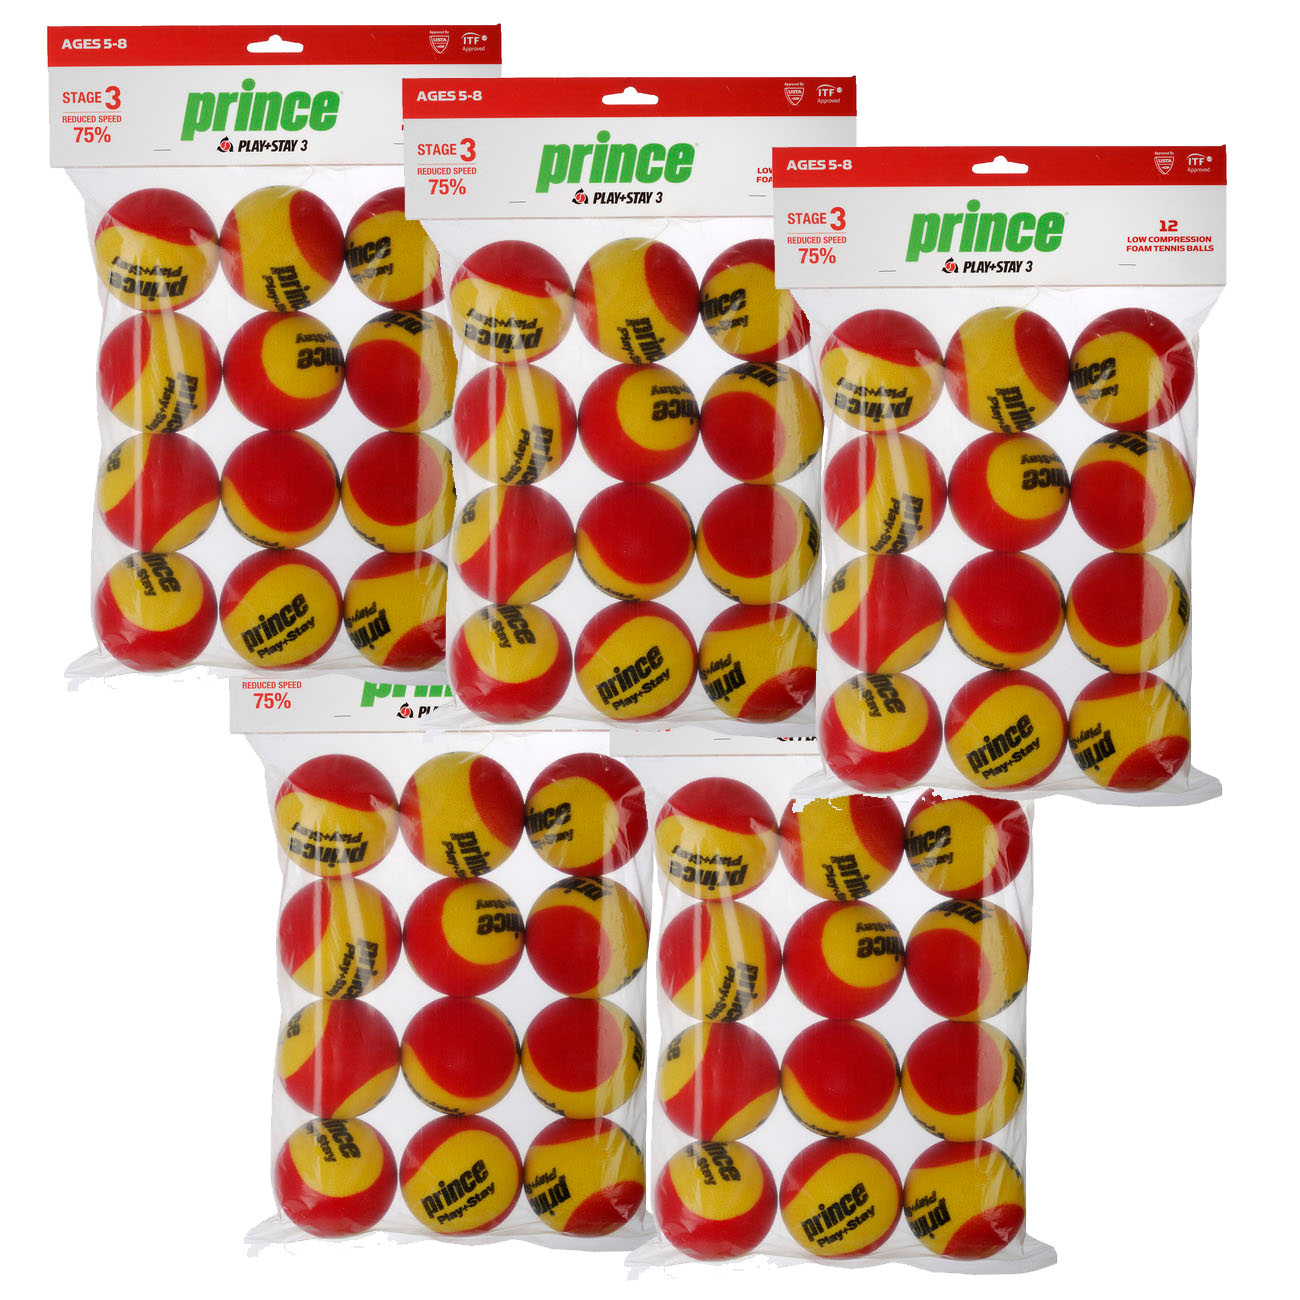 Prince Play And Stay Stage 3 Red Foam Mini Tennis Balls